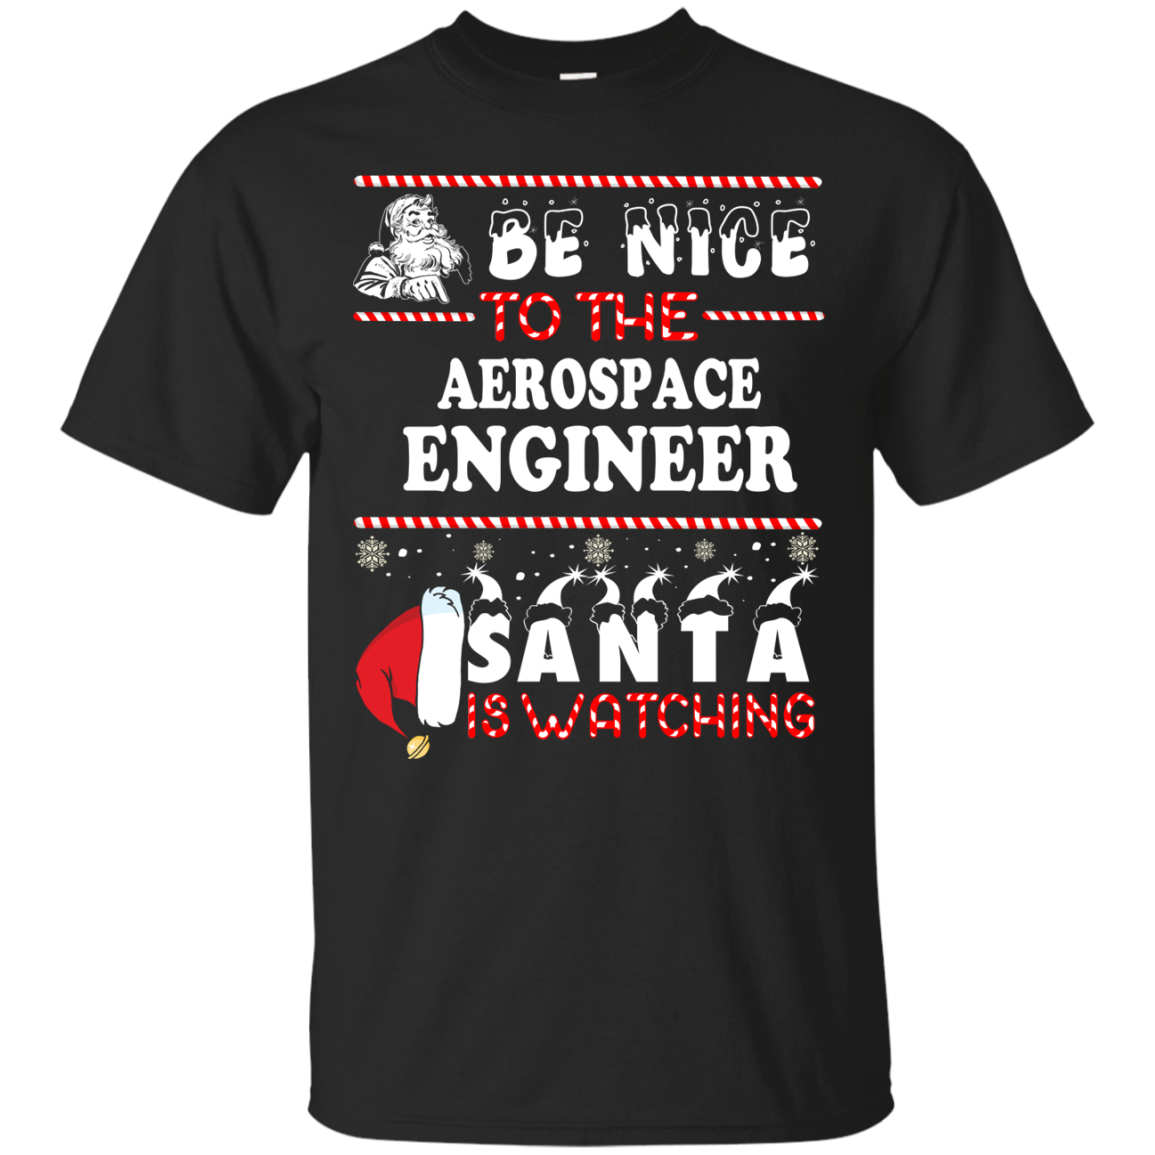 Be Nice To The Aerospace Engineer Santa Is Watching Sweatshirt, T Shirt